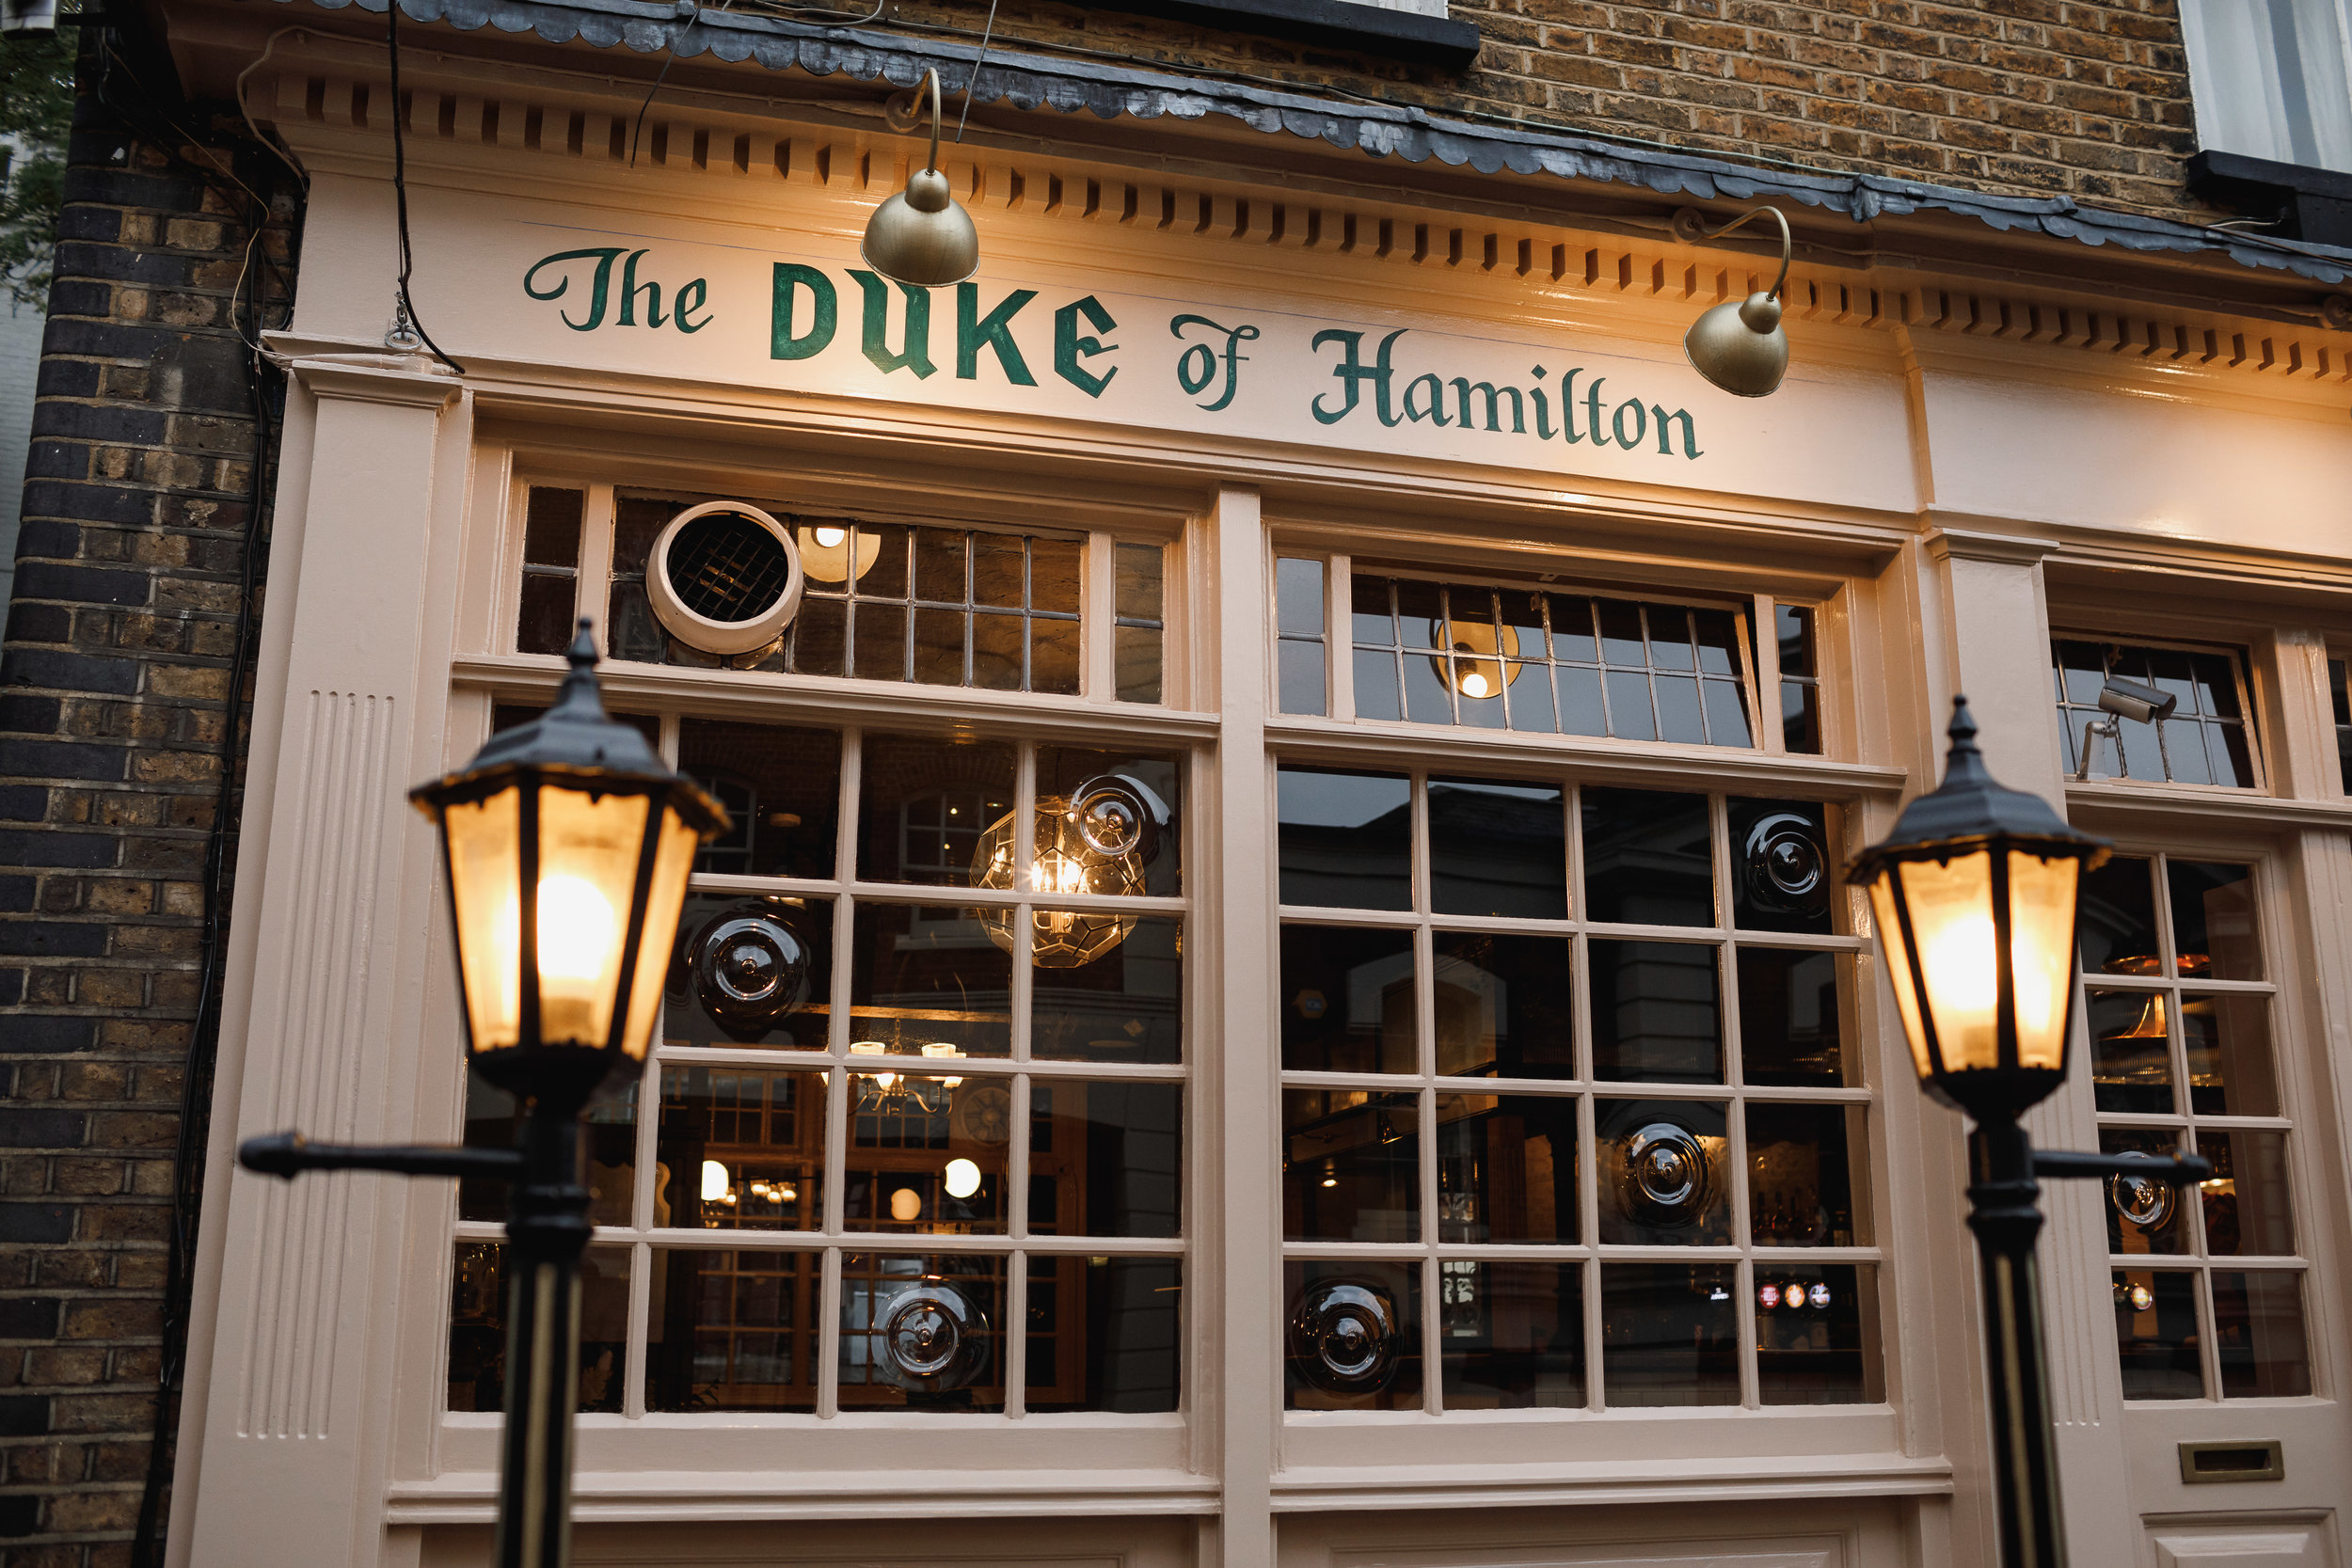 The Duke of Hamilton Pub - The iconic Duke of Hamilton pub has been a core part of Hampstead life since 1721 and boasts a rich history and heritage. Lovingly restored by local brothers Ben and Ed, and their best friend, Adam, it serves up an all-day menu of delicious, seasonal food and drink.